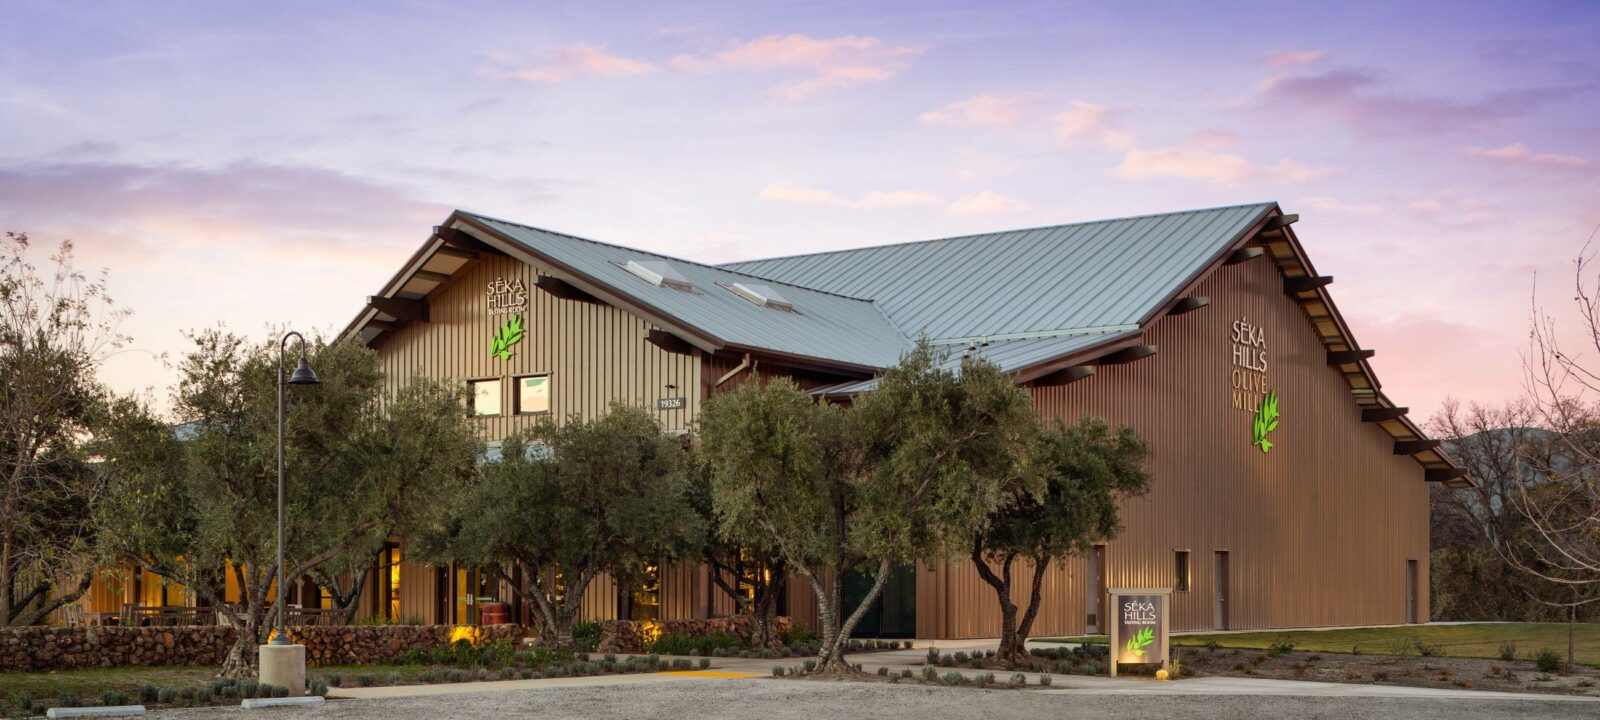 Seka Hills Olive Mill Tasting Room and Expansion